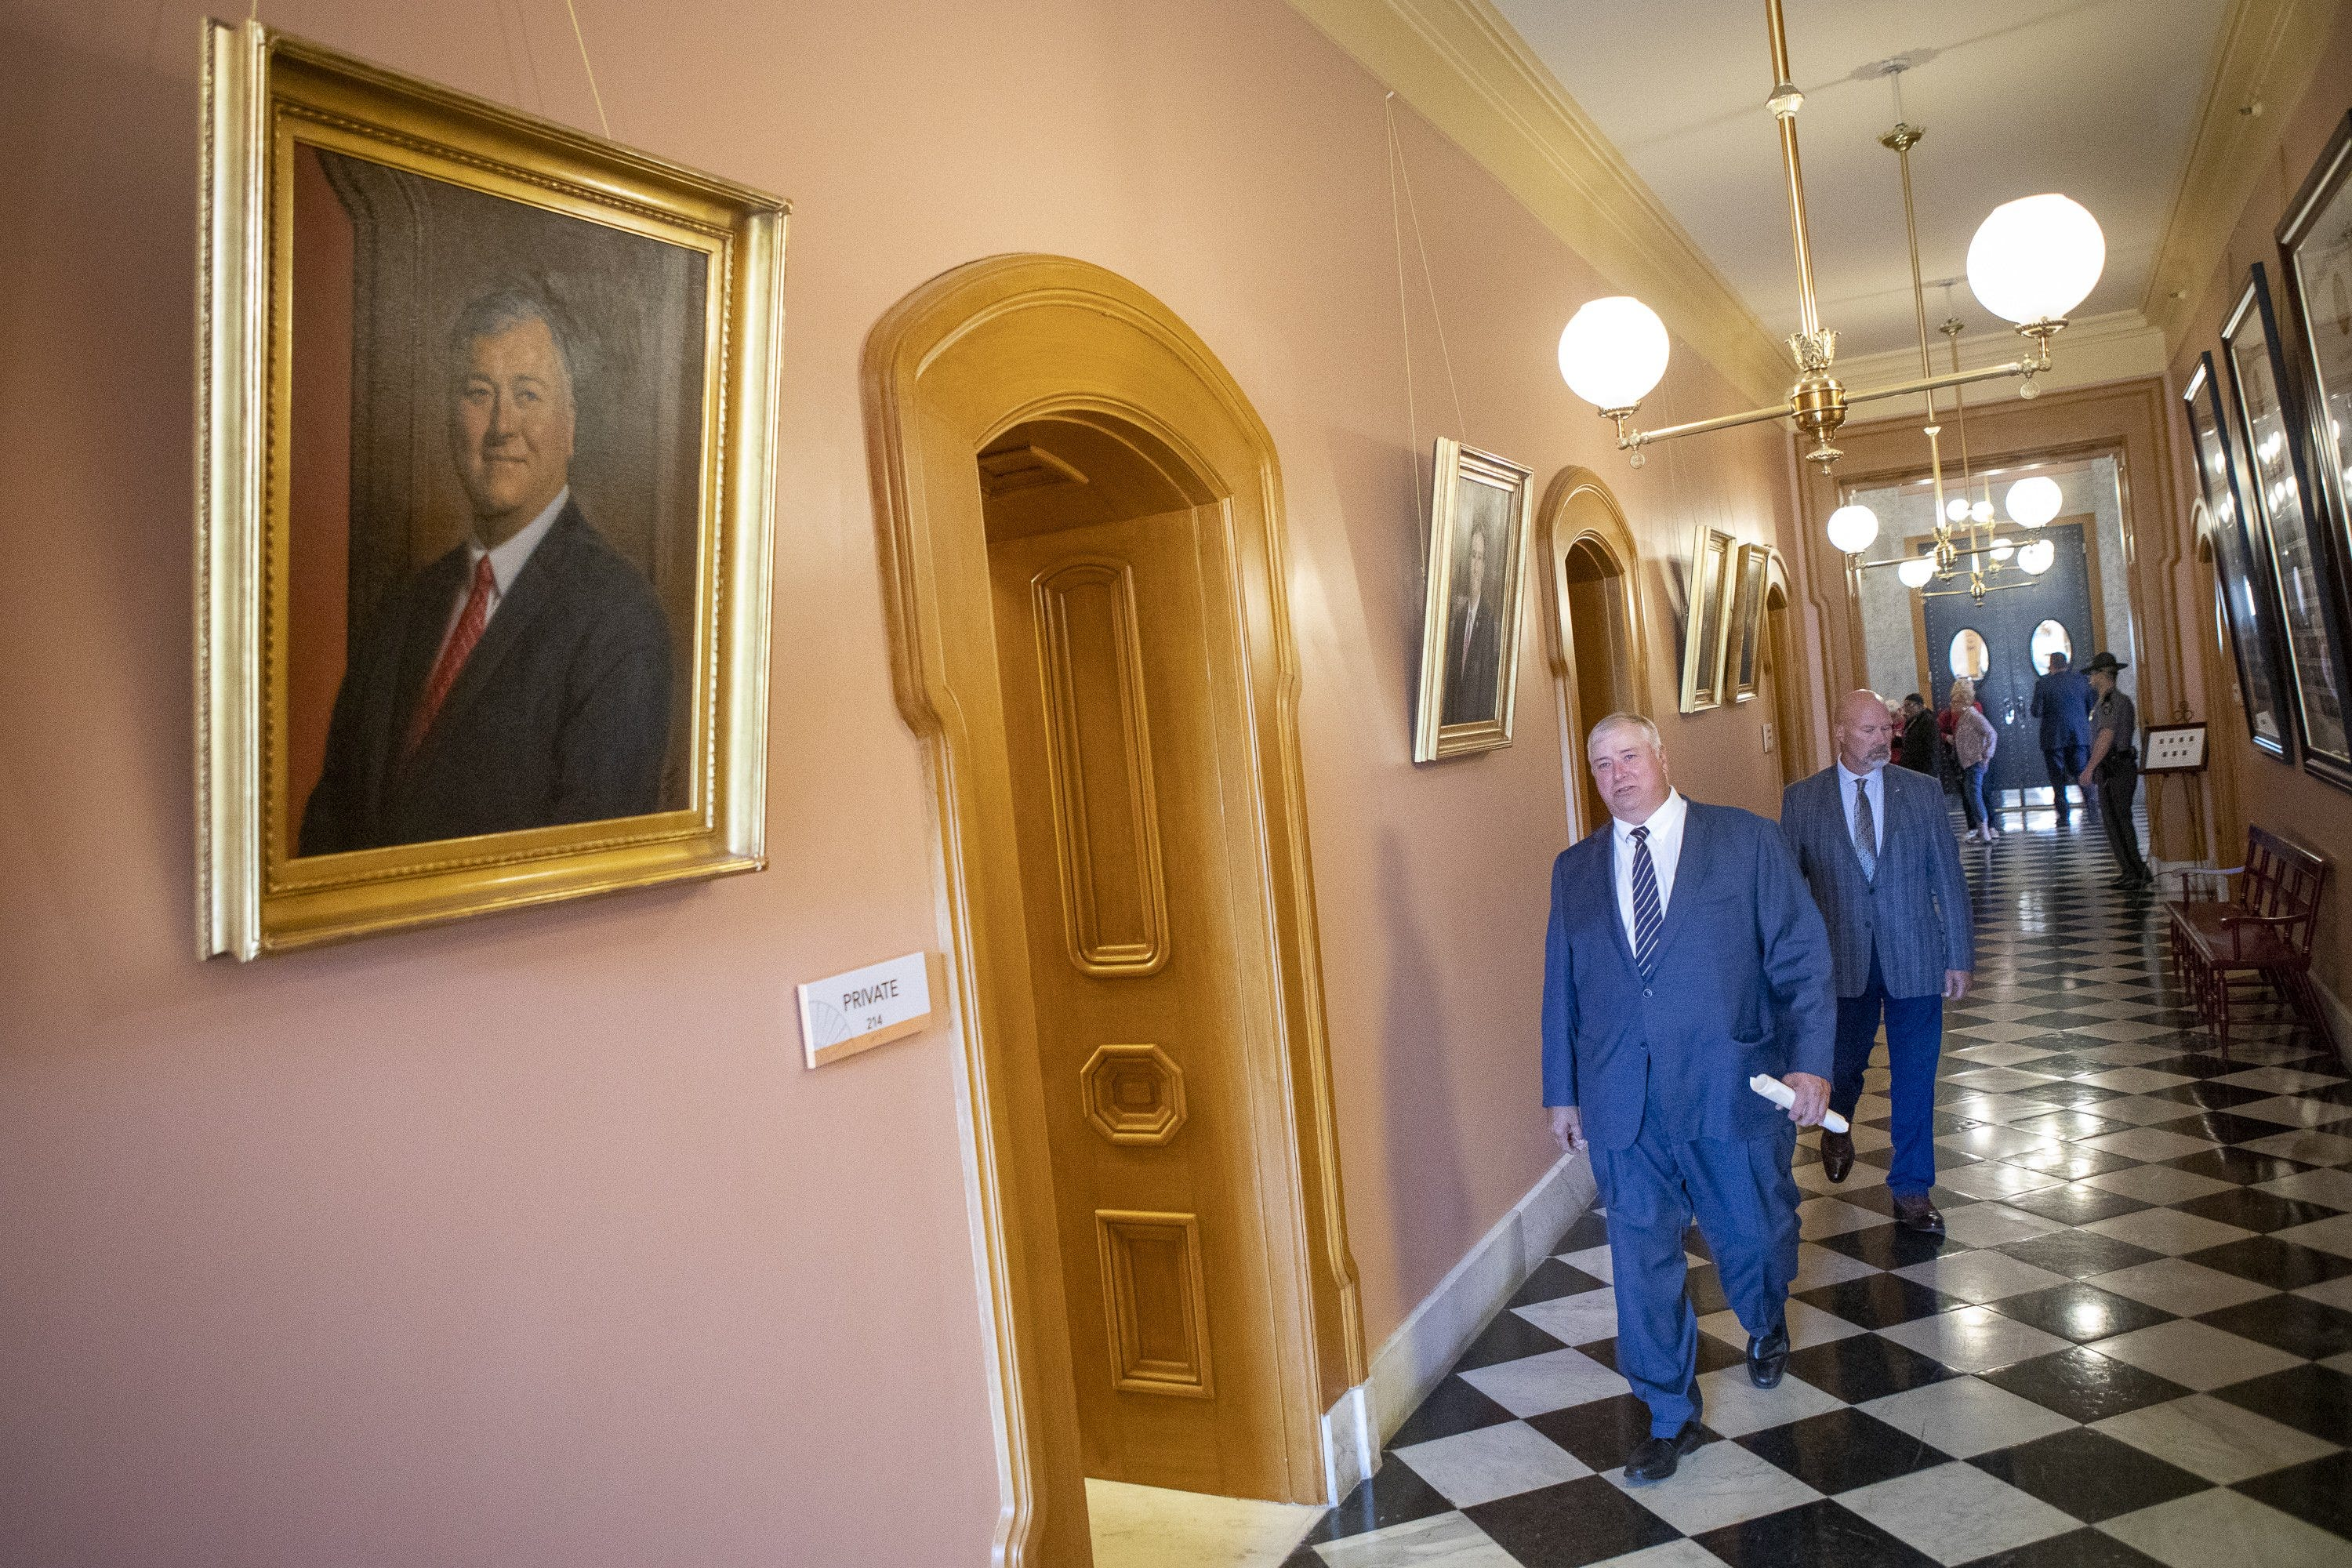 Rep. Larry Householder walks past his portrait after being expelled from the Ohio House at the Ohio Statehouse in Columbus on Wednesday, June 16, 2021.